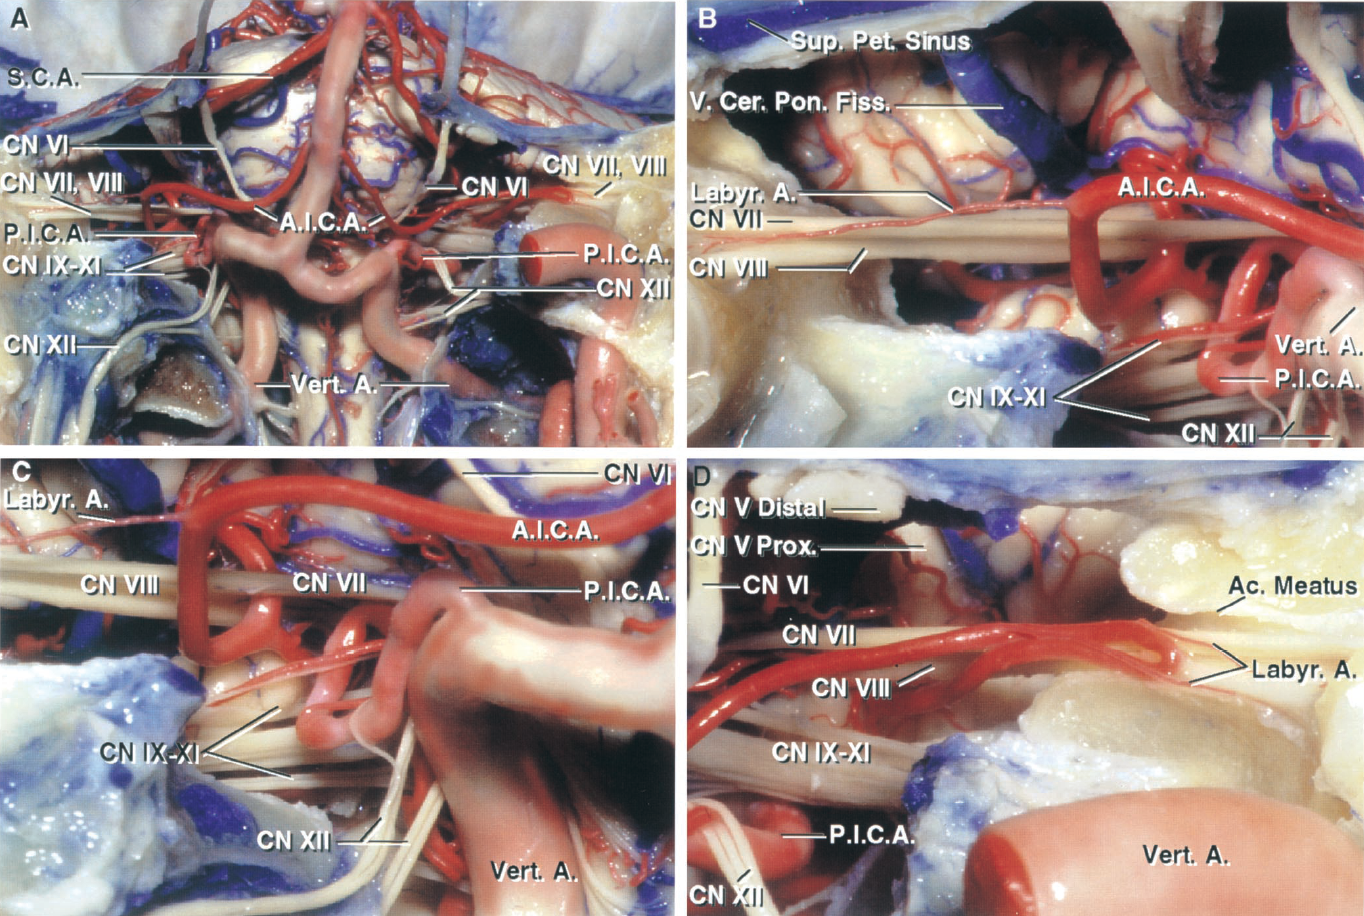 FIGURE 2.12. AICA relationships. A, anterior view. The clivus and adjacent part of the occipital and temporal bones have been removed to expose the front of brainstem, vertebral and basilar arteries, facial and vestibulocochlear nerves in the right internal acoustic meatus, and the hypoglossal nerve in the right hypoglossal canal. The left AICA loops into the porus of the meatus. B, enlarged view of the right cerebellopontine angle. The AICA passes between the facial and vestibulocochlear nerves. The hypoglossal nerves are stretched around the posterior surface of the vertebral artery. The vertebral artery kinks upward into the cerebellopontine angle where the PICA arises in close relationship to the root exit zone of the facial nerve, a common finding in hemifacial spasm. A labyrinthine artery arises from the AICA. C, another enlarged view of the right cerebellopontine angle. The labyrinthine artery passes laterally with the facial nerve. The PICA loops upward and contacts the lower margin of the facial nerve. The vein of the cerebellopontine fissure ascends to empty into the superior petrosal sinus. D, the left AICA passes below the abducens, facial, and vestibulocochlear nerves and loops into the porus where it gives off two labyrinthine branches. Some of the hypoglossal rootlets are stretched over the PICA. The posterior trigeminal nerve was divided behind Meckel's cave. The proximal stump arises from the midpons and the distal portion enters Meckel's cave. A., artery; Ac., acoustic; A.I.C.A., anteroinferior cerebellar artery; Cer. Pon., cerebellopontine; CN, cranial nerve; Fiss., fissure; Labyr., labyrinthine; Pet., petrosal; P.I.C.A., posteroinferior cerebellar artery; Prox., proximal; S.C.A., superior cerebellar artery; Sup., superior; V., vein; Vert., vertebral.